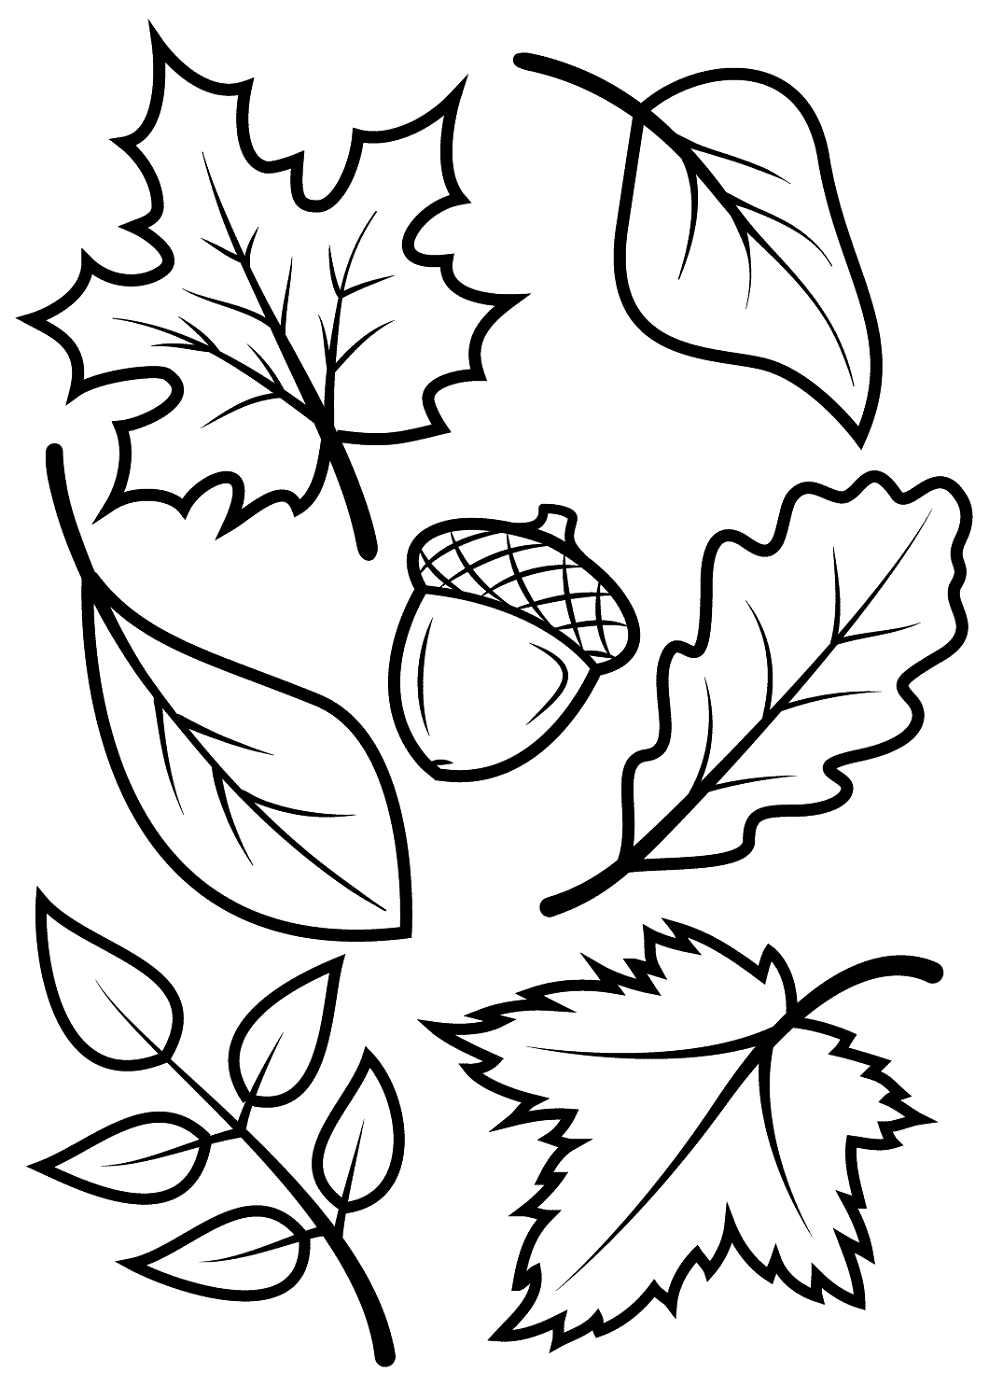 Leaf Coloring Kids Learning Activity Fall Leaves Coloring Pages Fall Coloring Sheets Leaf Coloring Page